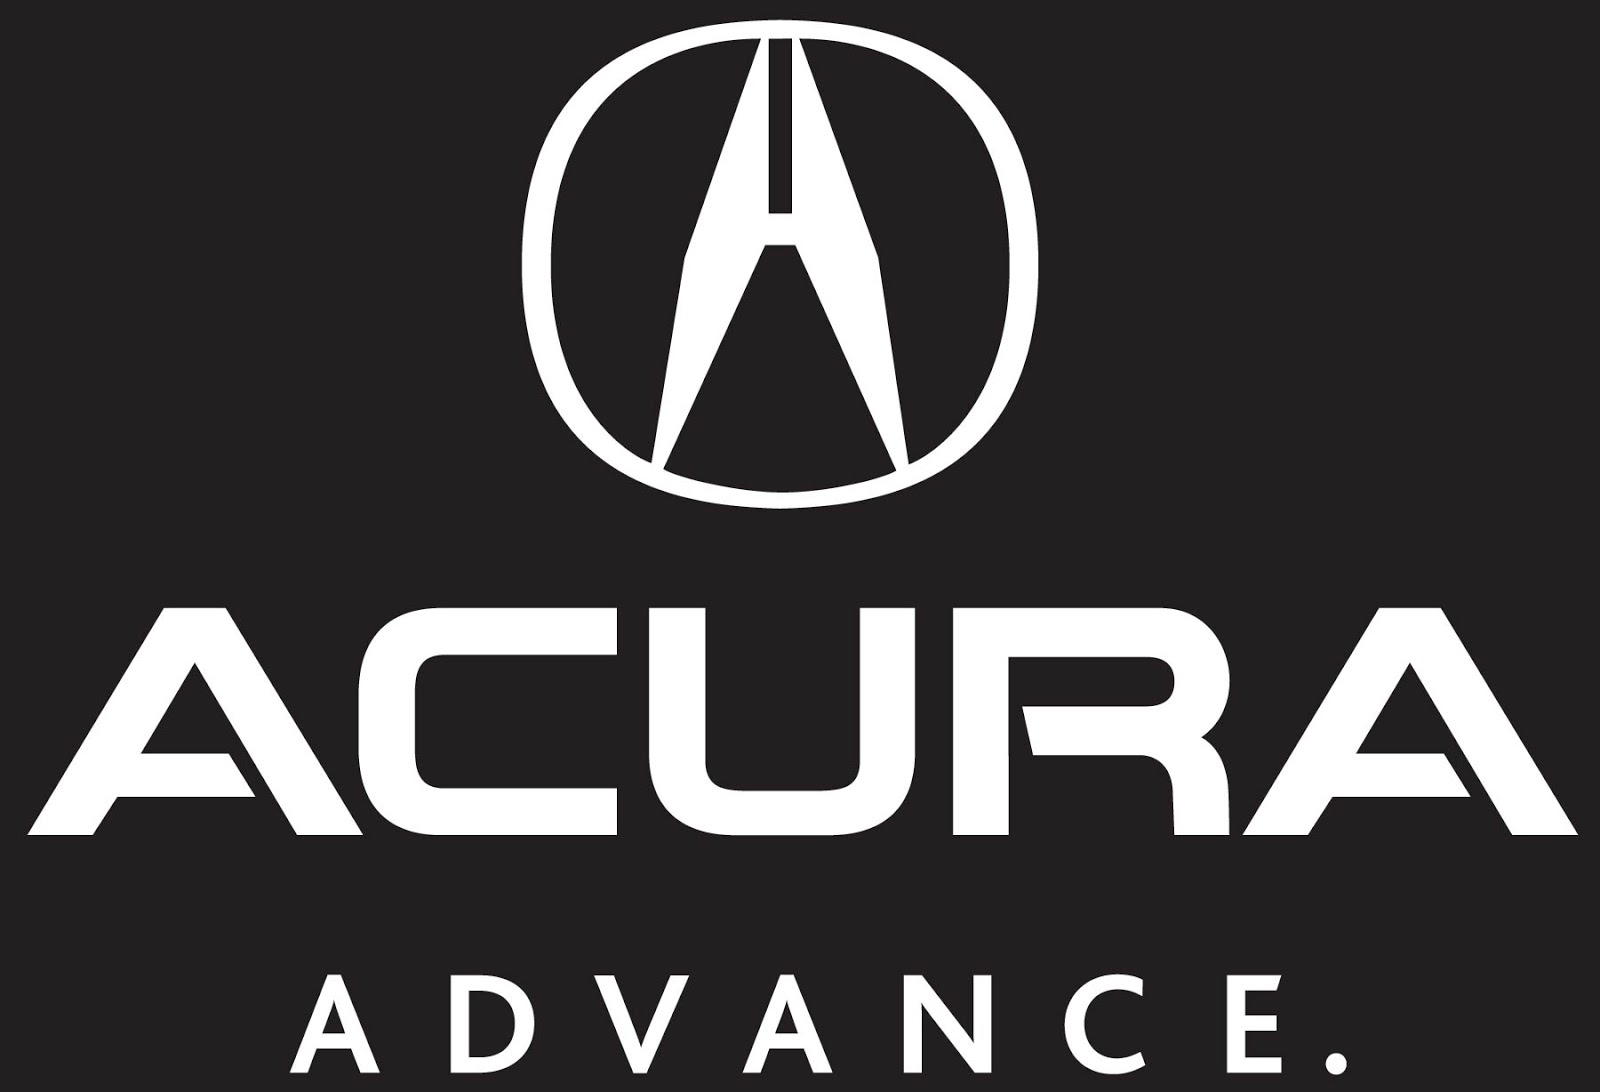 Acura Logo Acura Car Symbol Meaning And History Car Brand Names Com